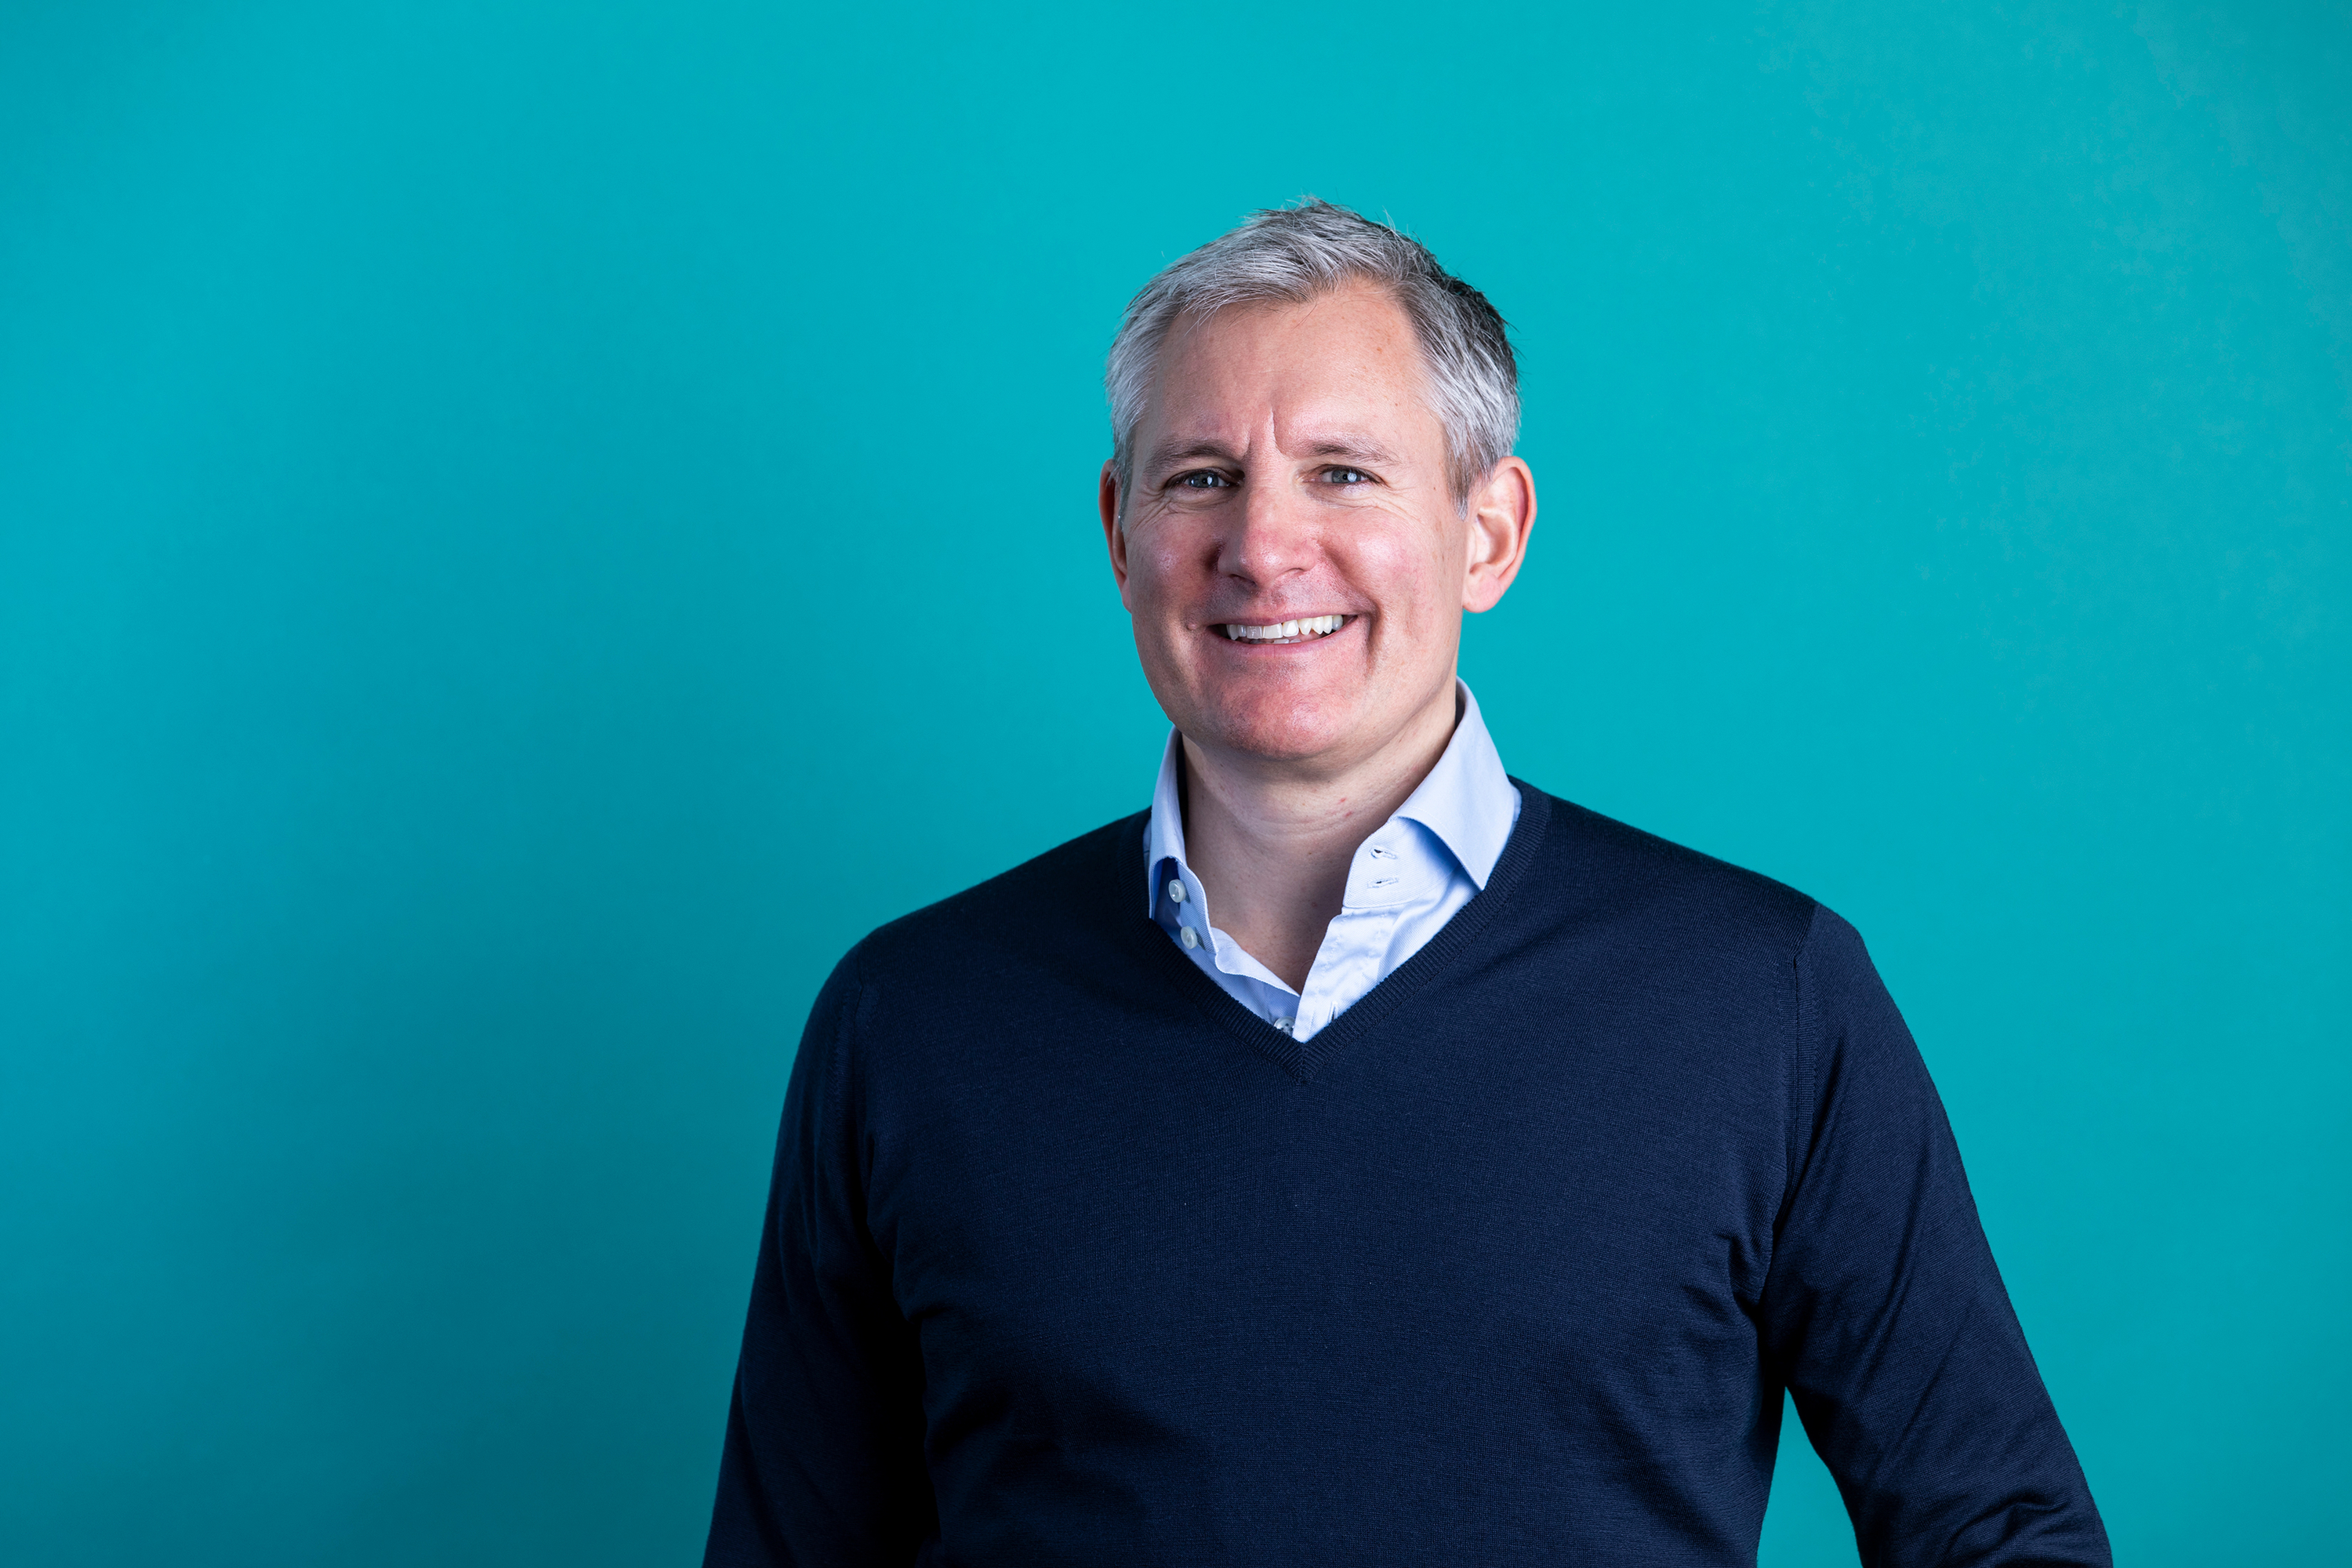 MediaCom Chief Operating Officer Toby Jenner becomes global CEO of Wavemaker